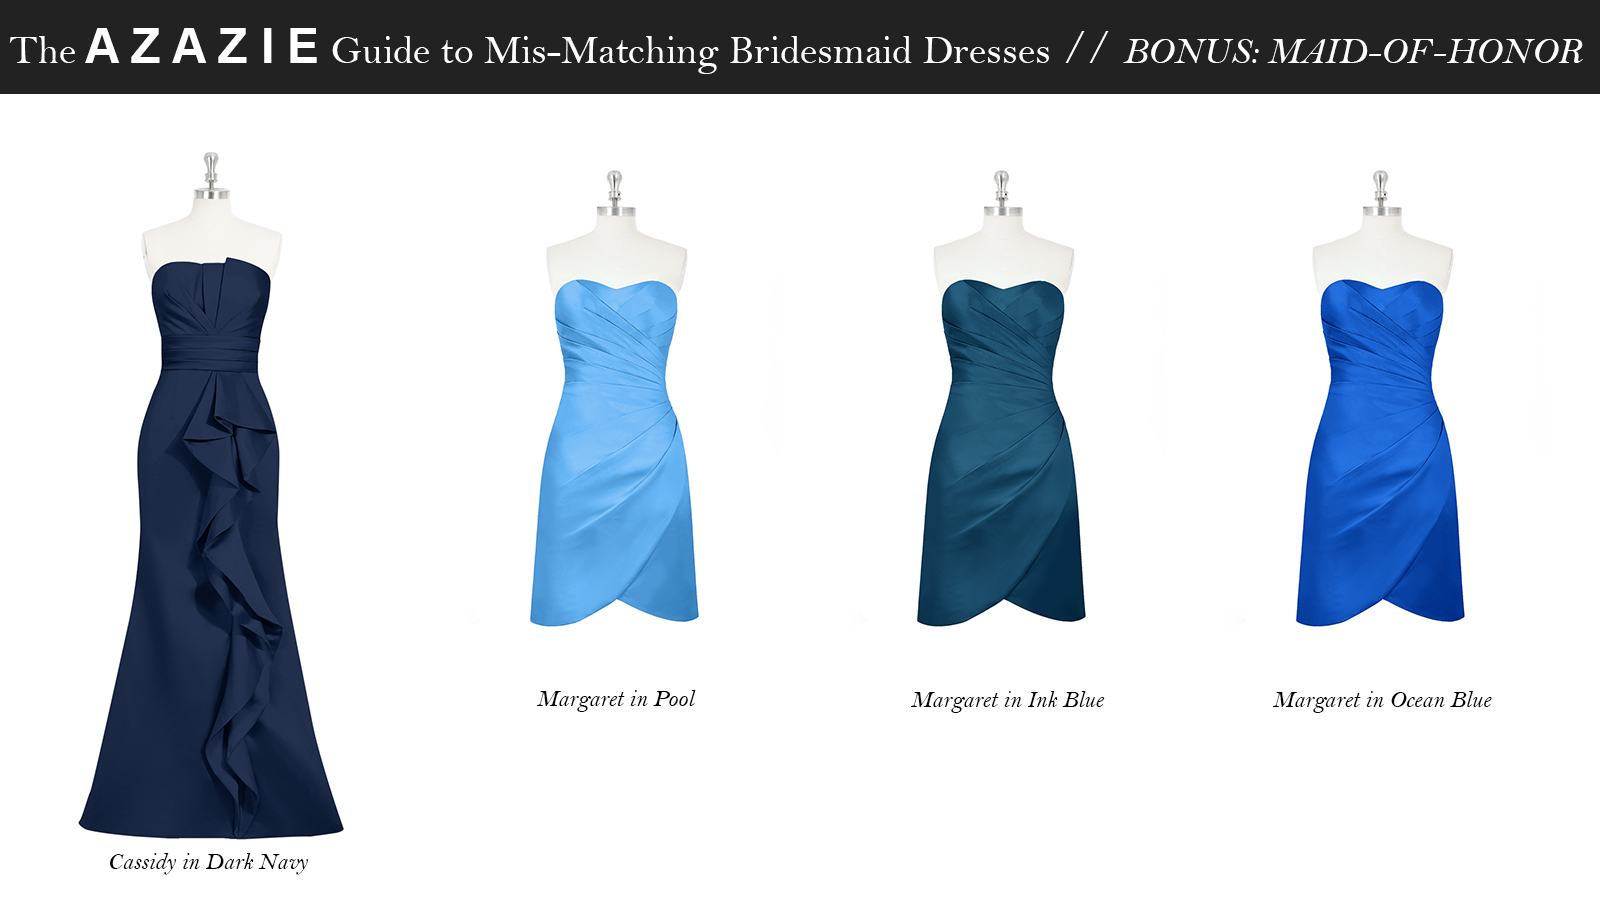 AZAZIE_Guide_MisMatching_Bridesmaid_Dresses_Maid_Of_Honor